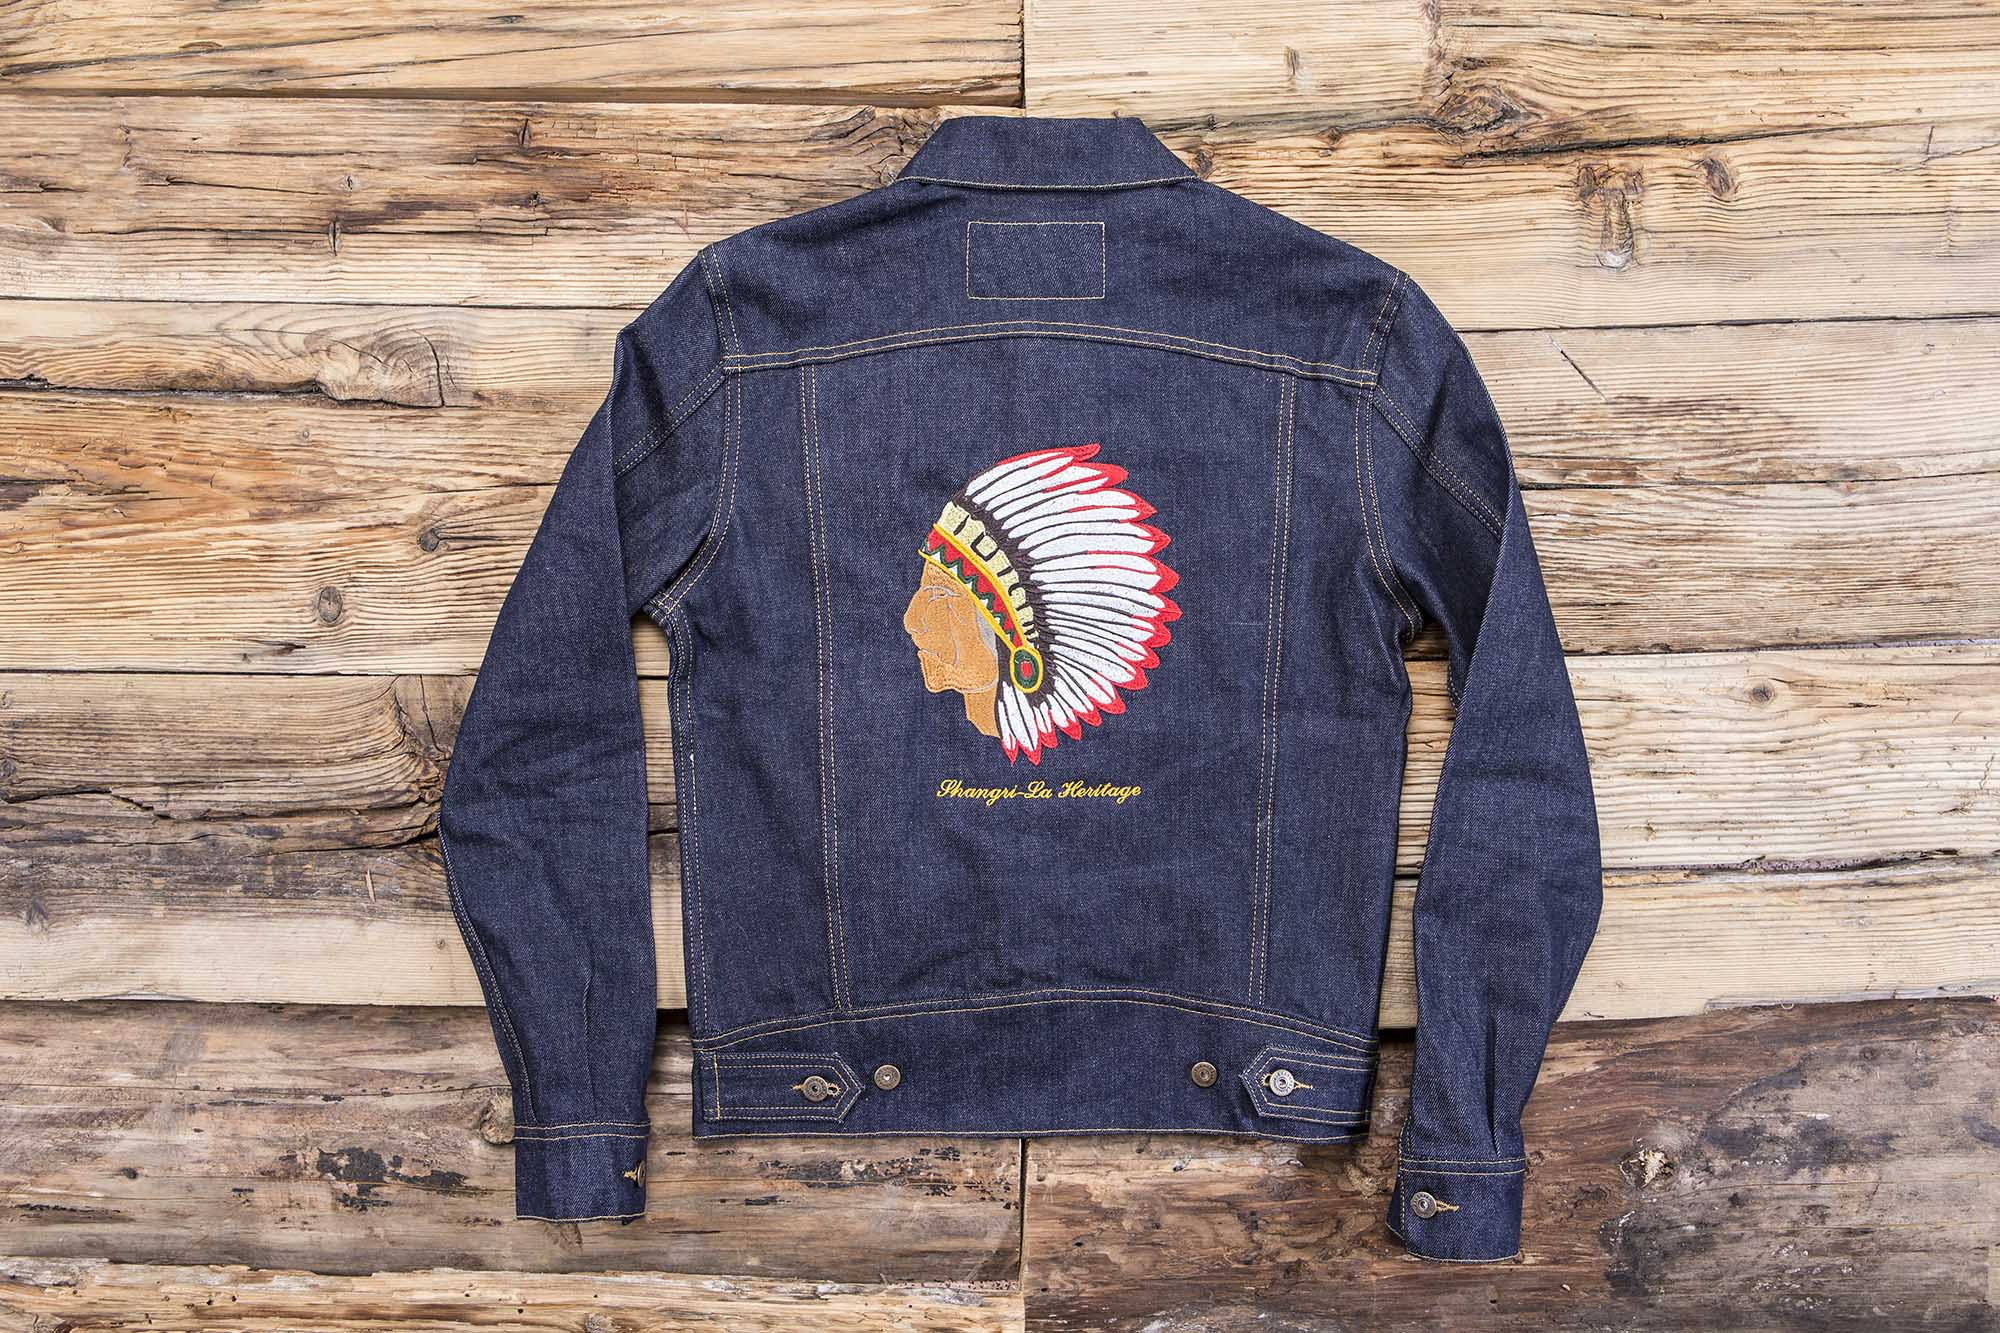 shangri-la-heritage-single-rider-denim-jacket-toro-seduto-still-life-back